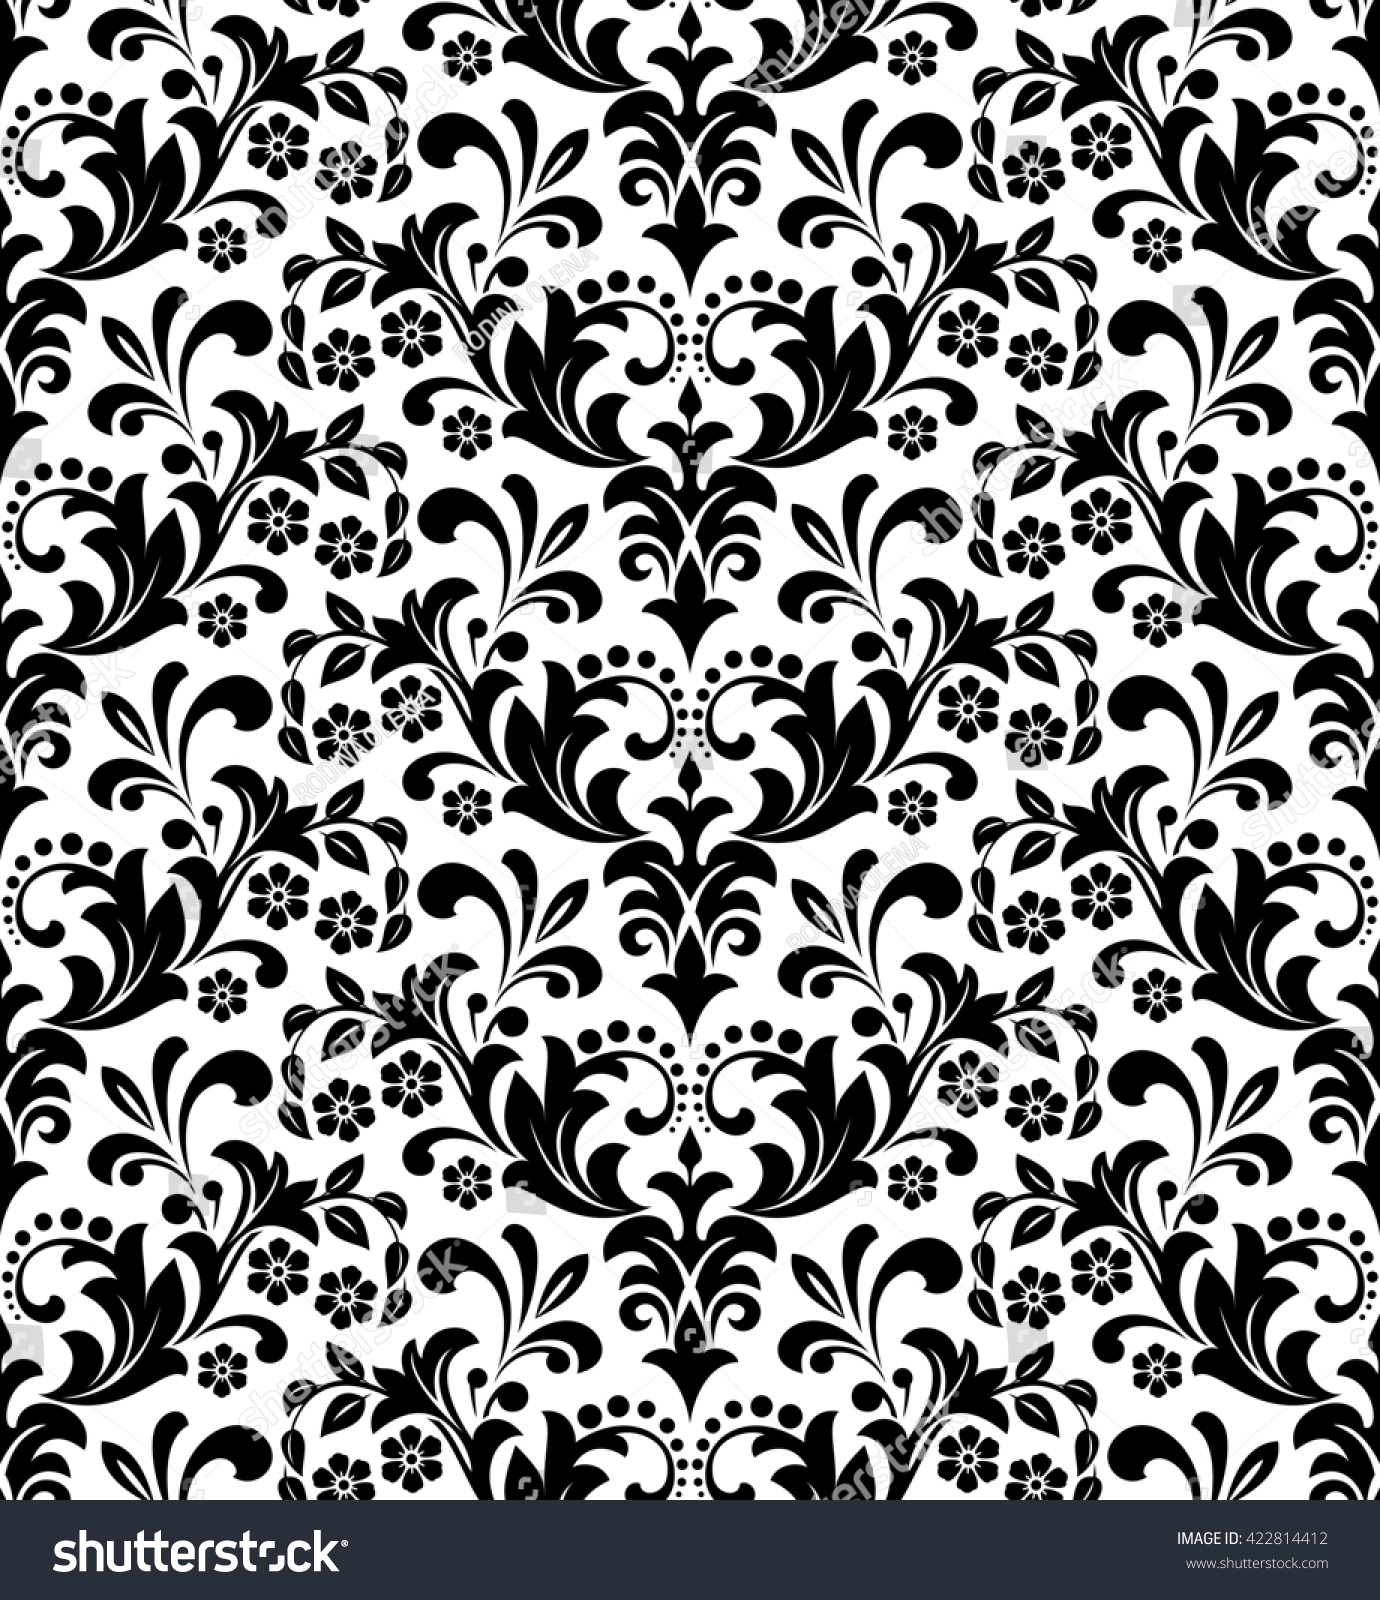 Damask Seamless Floral Pattern Royal Wallpaper Flowers On A Black